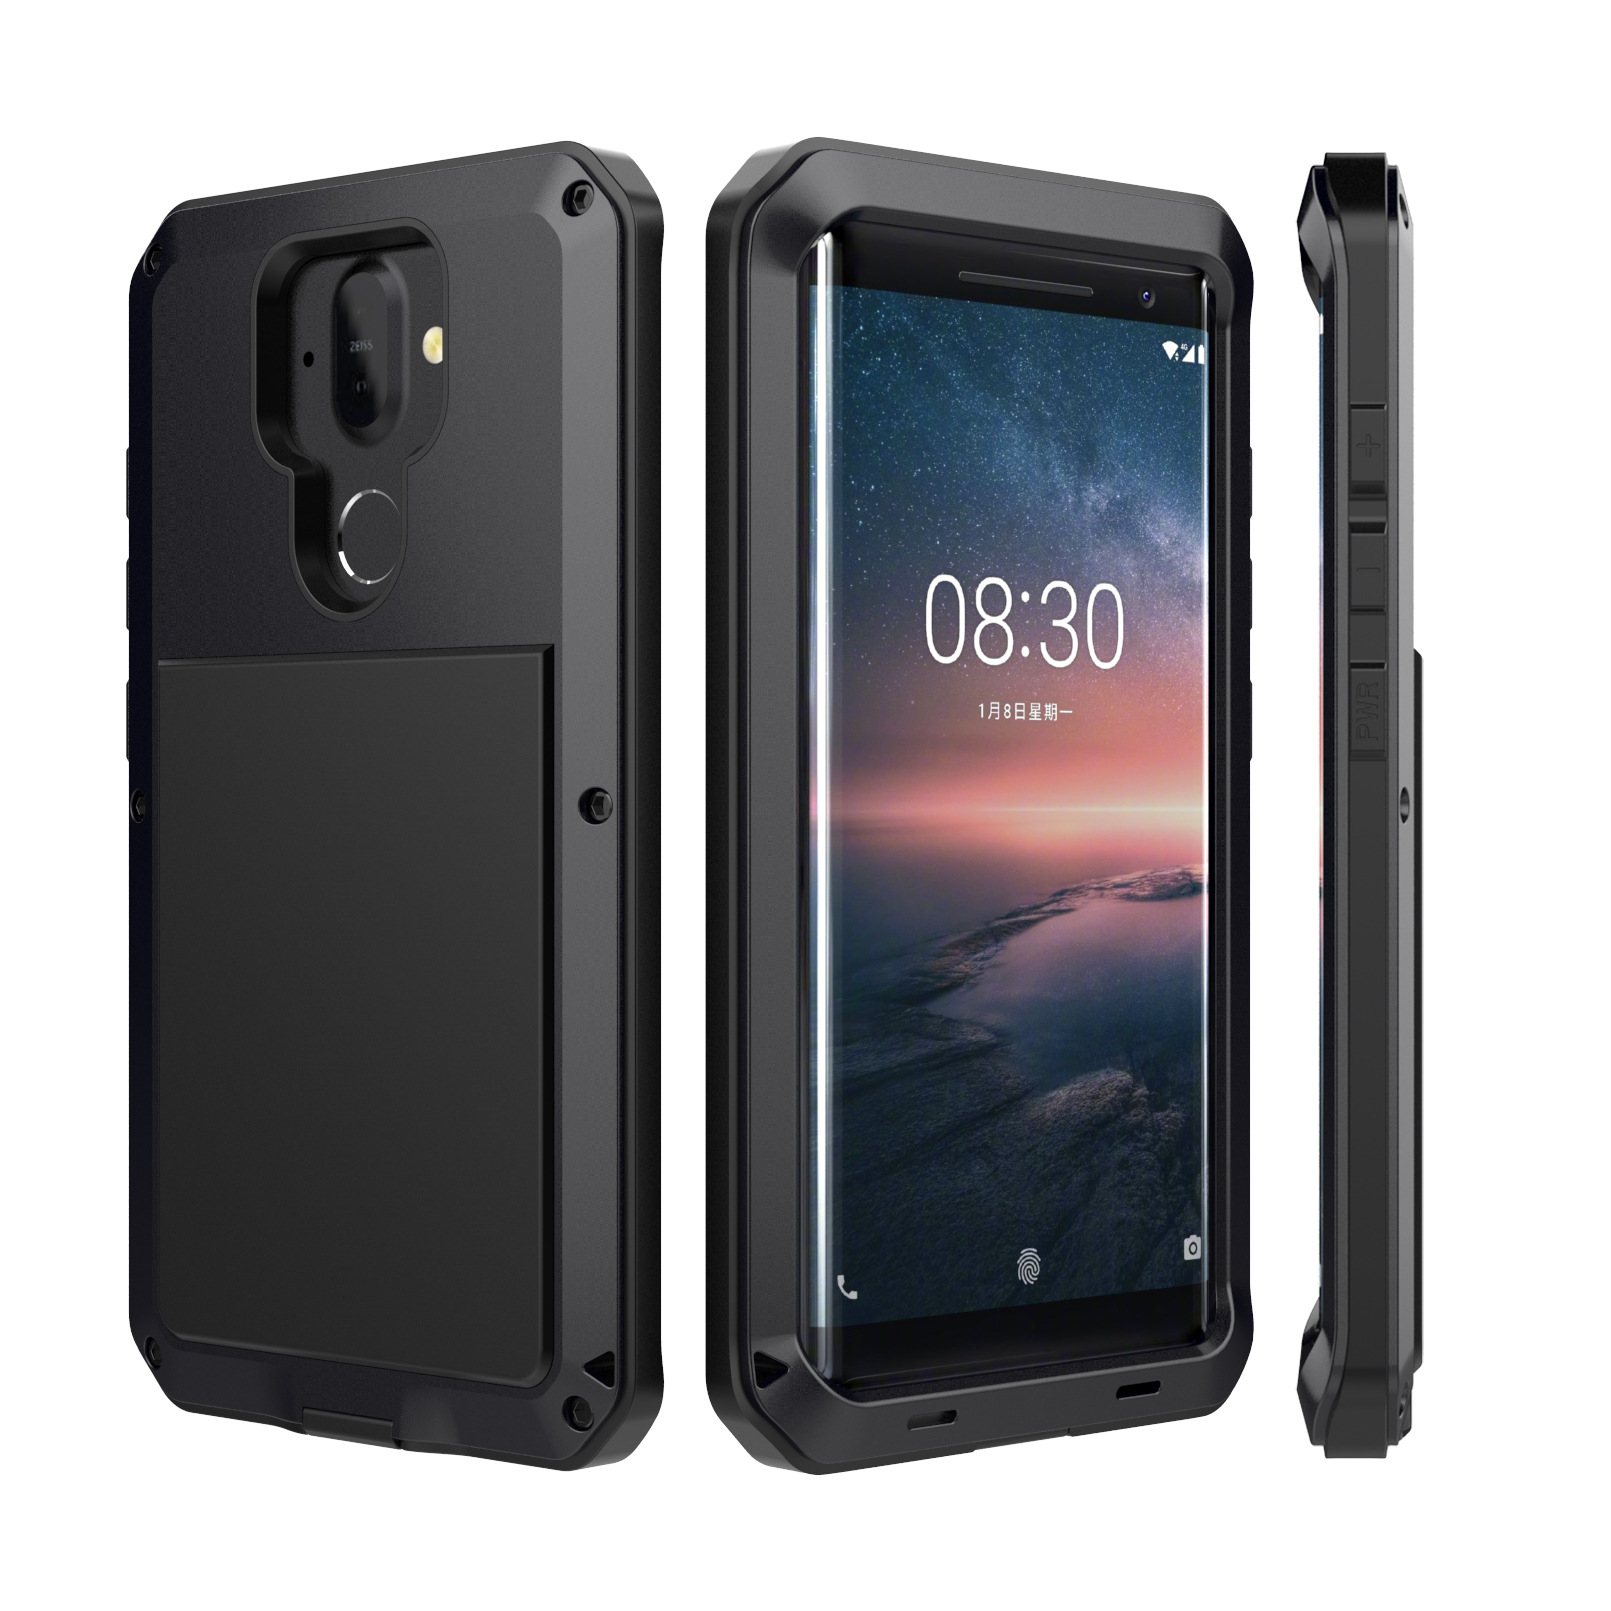 Hybrid Tank 360 Full Protection Case For Nokia 8 Sirocco Aluminum Metal Silicone Shockproof Protection Case Cover